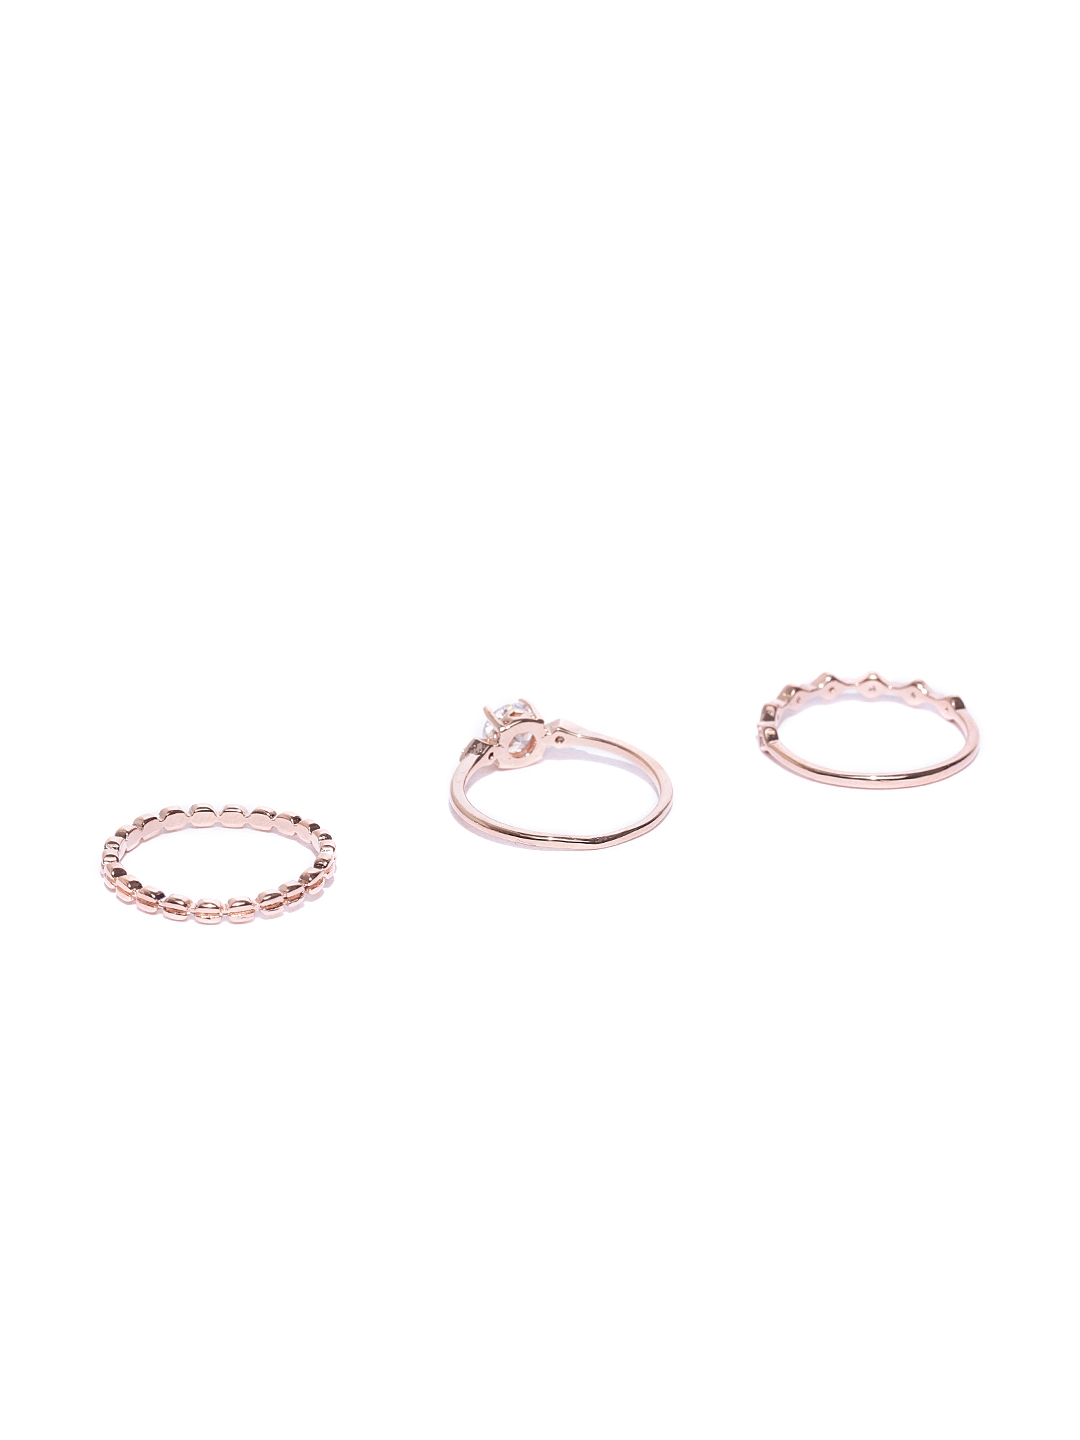 9fea3c78a Buy Accessorize Set Of 3 Rose Gold Plated Finger Rings - Ring for ...